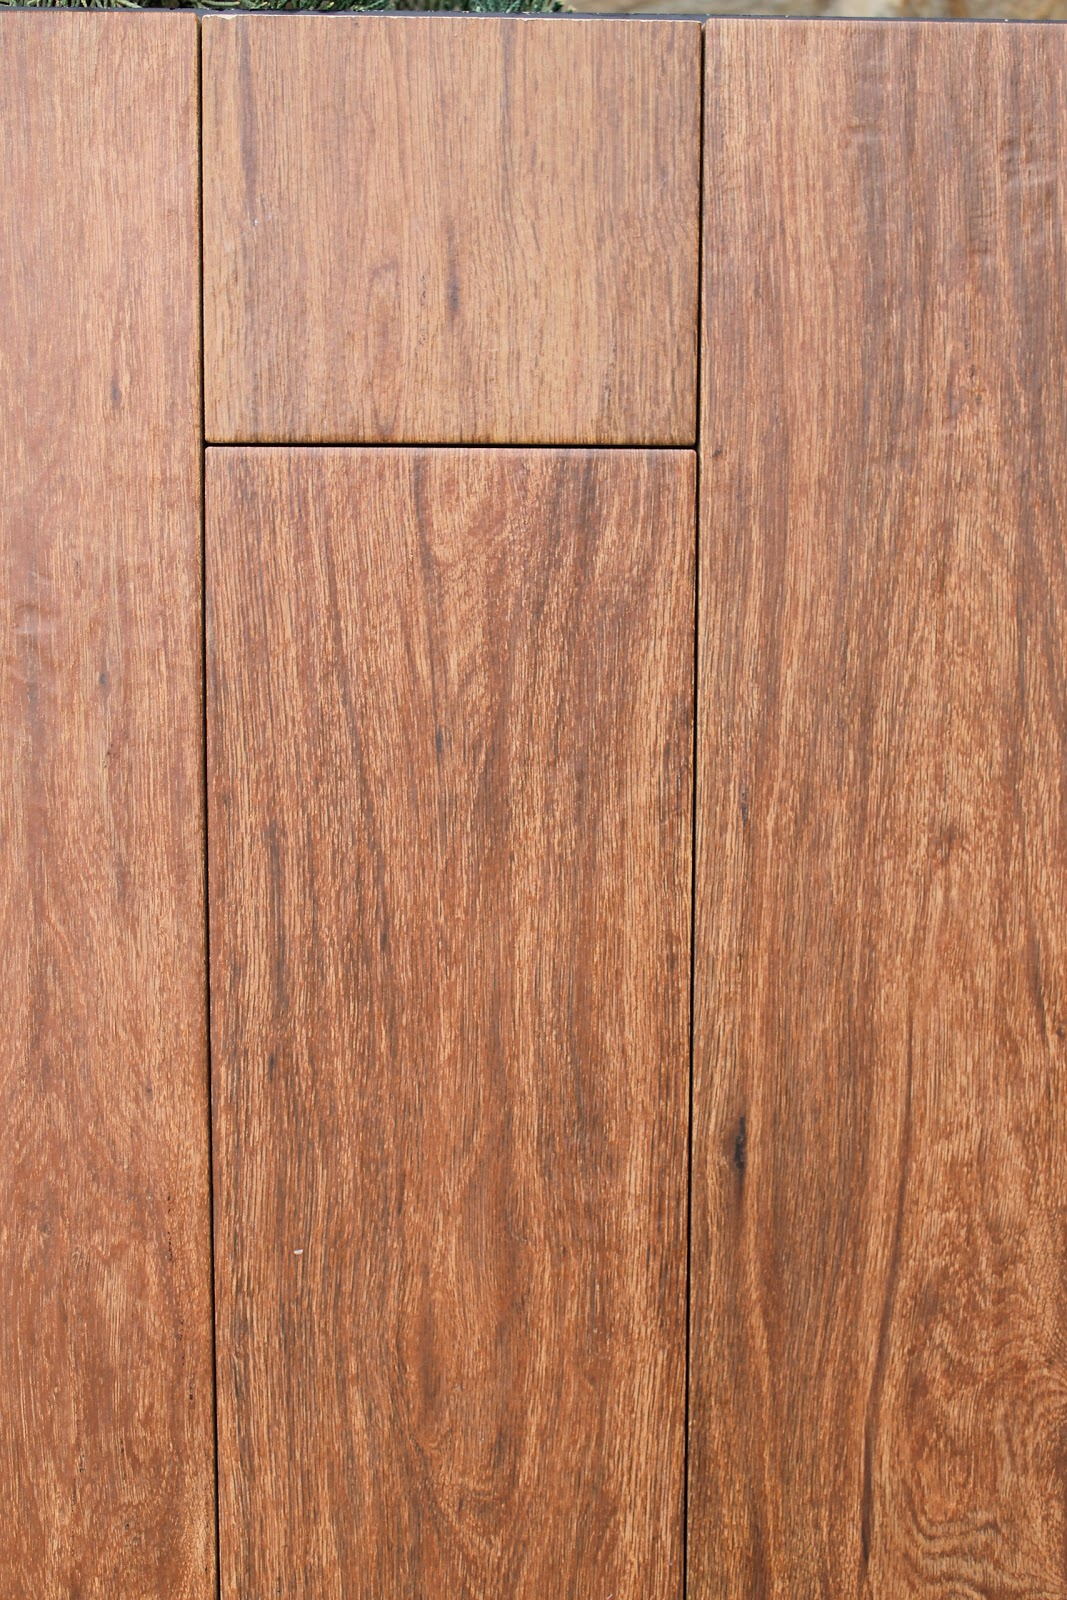 Tile That Looks Like Wood Top 28 Kitchen Floor Tile That Looks Like Wood Ceramic Tiles Tile